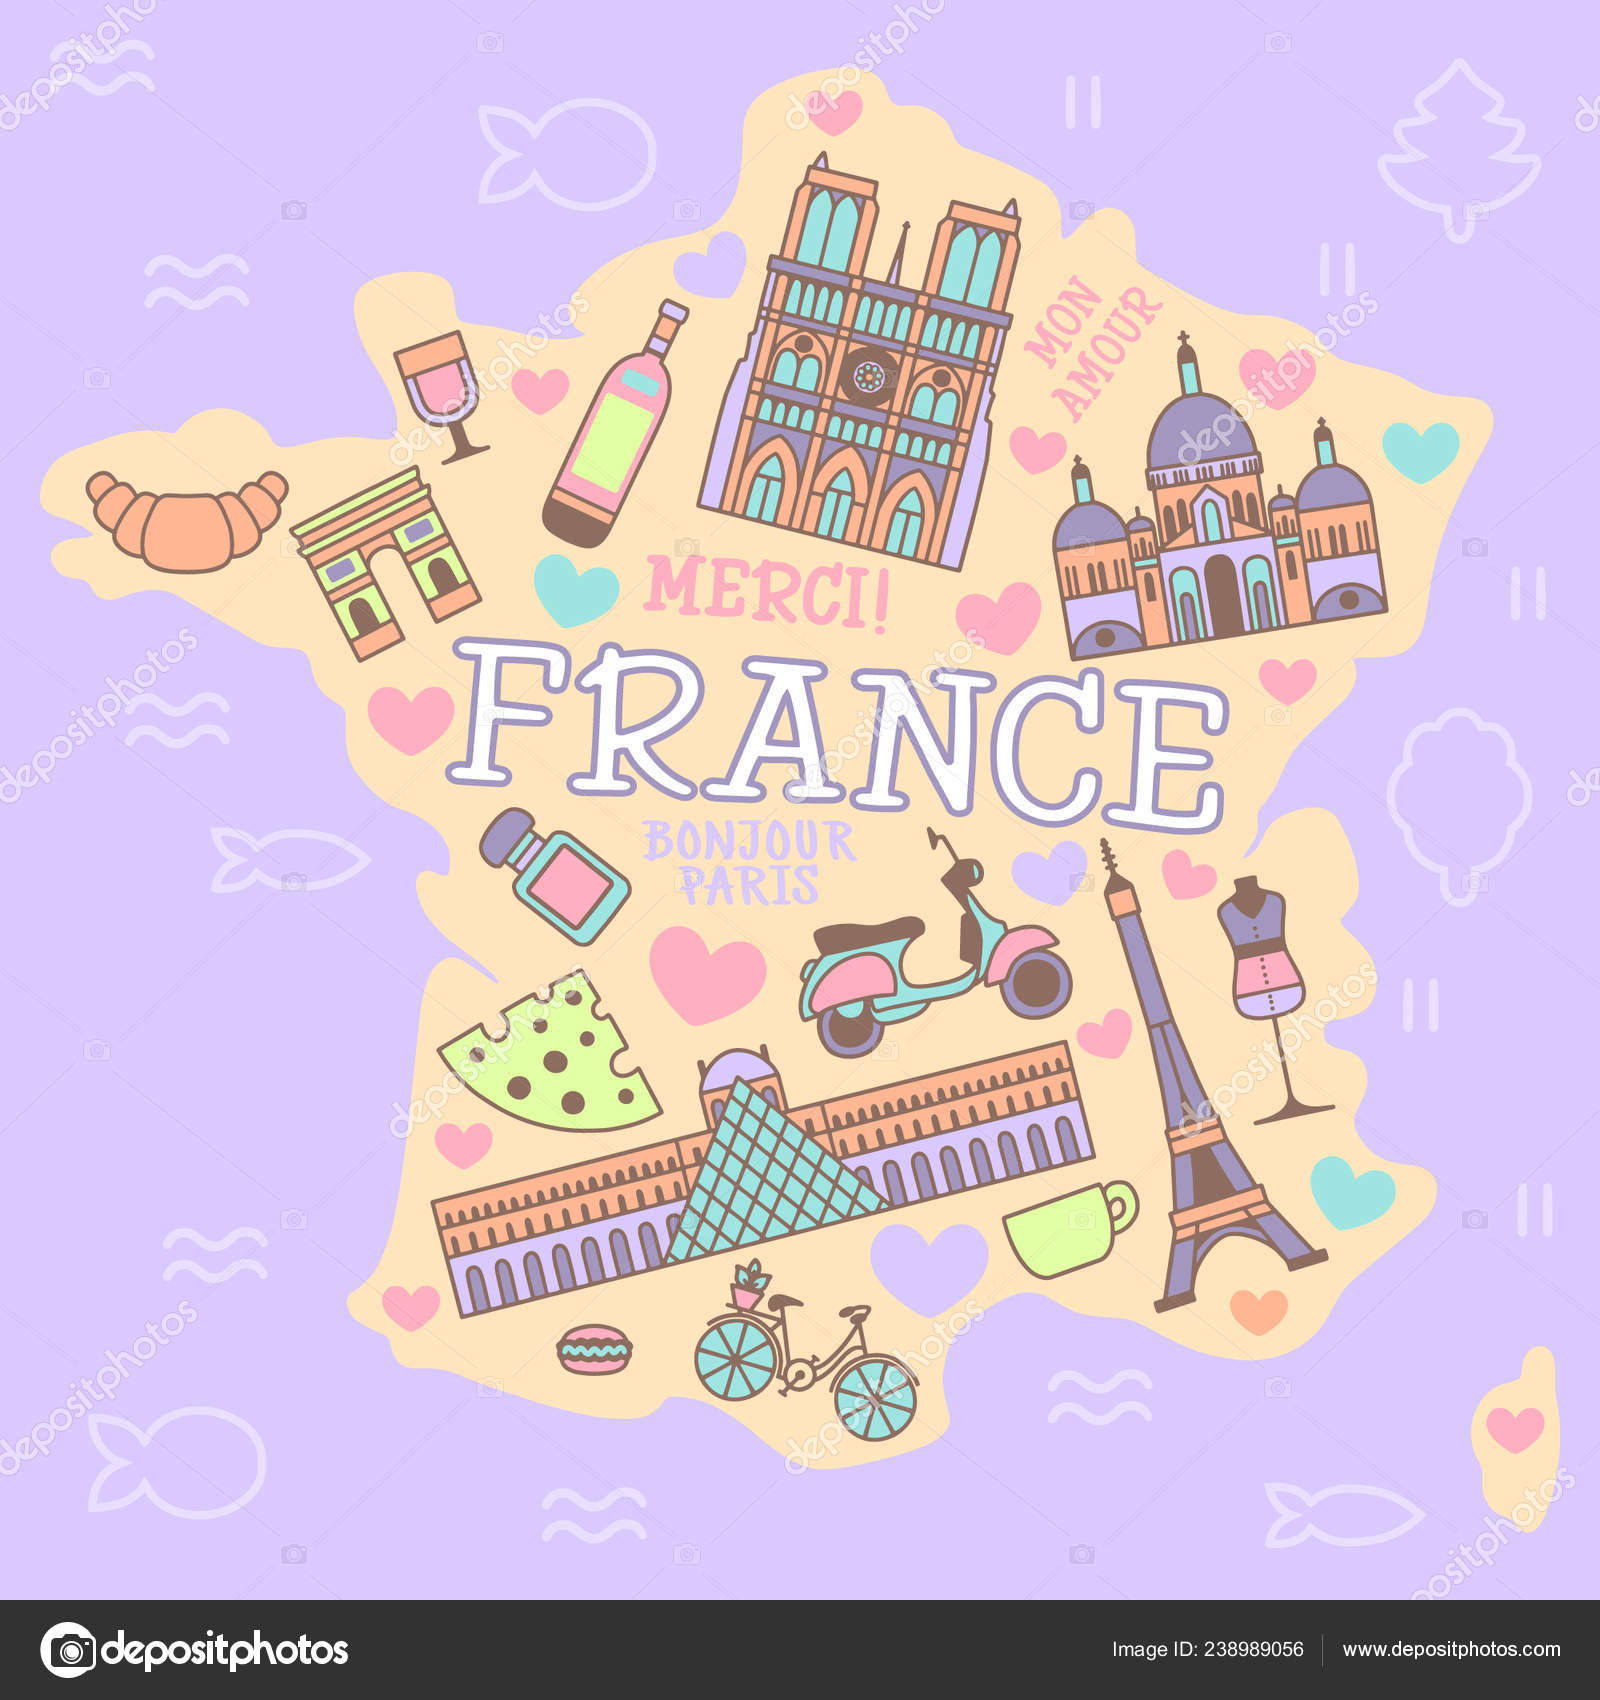 Map Of France Poster.France Cartoon Travel Vector Map French Symbols Other Decorative